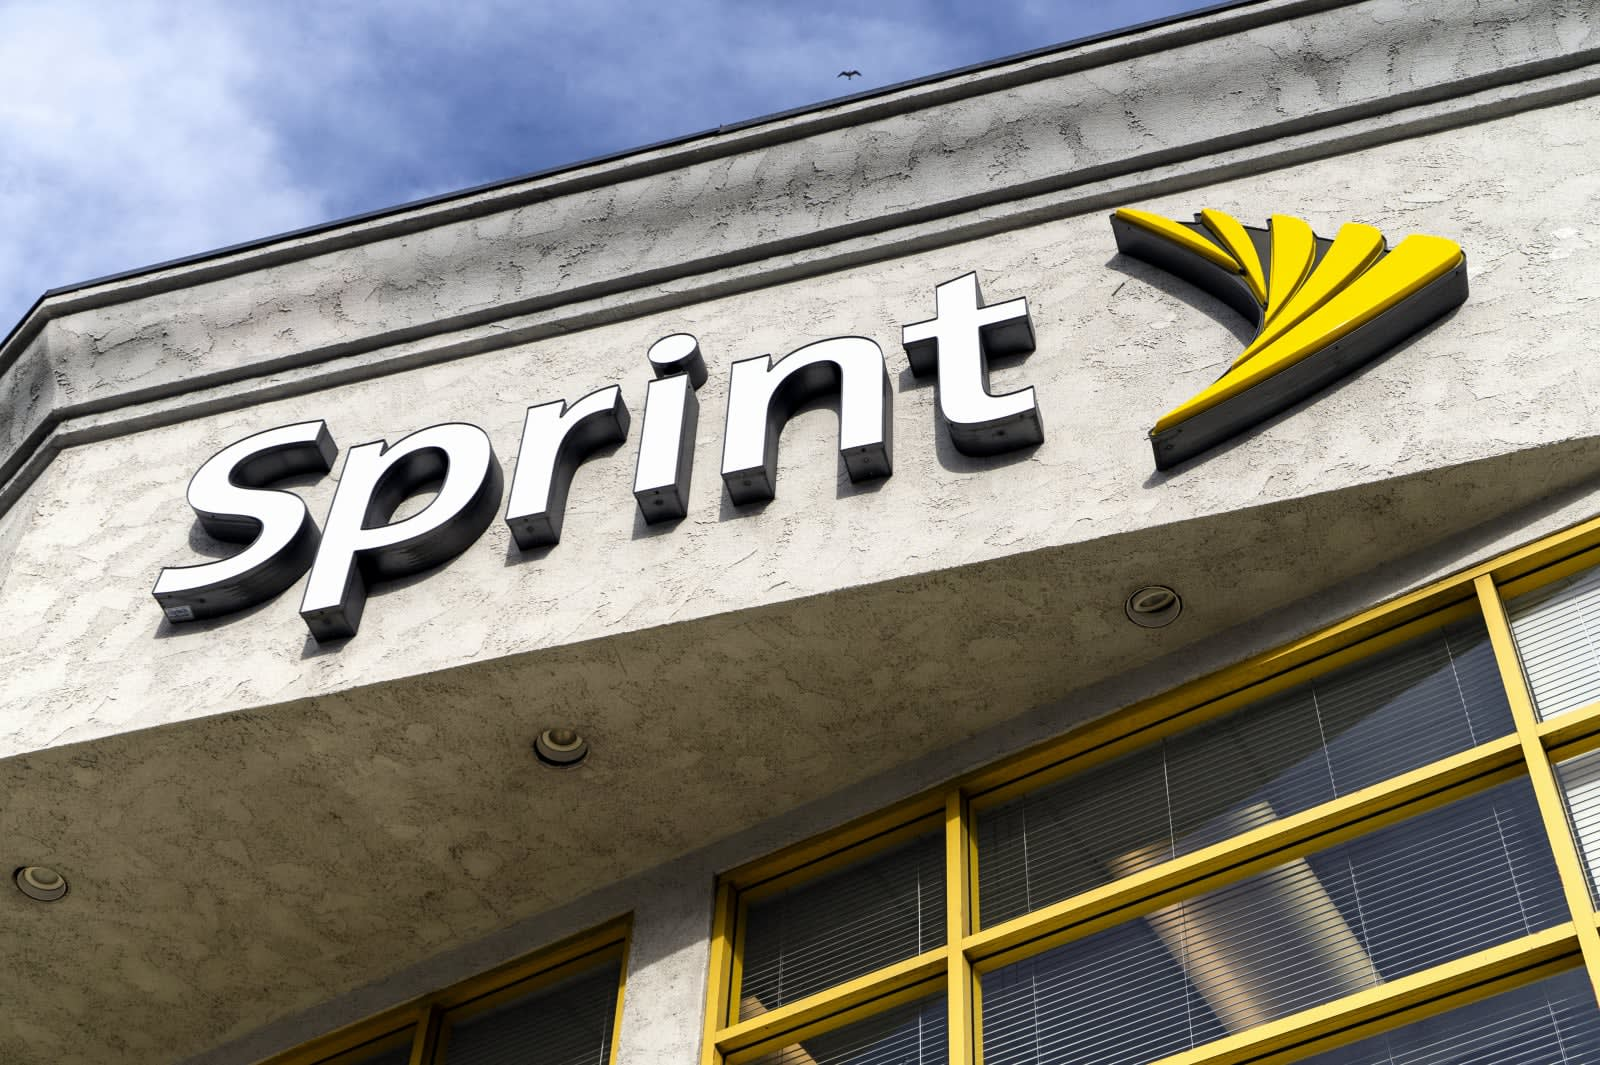 Hackers broke into Sprint accounts through Samsung's website